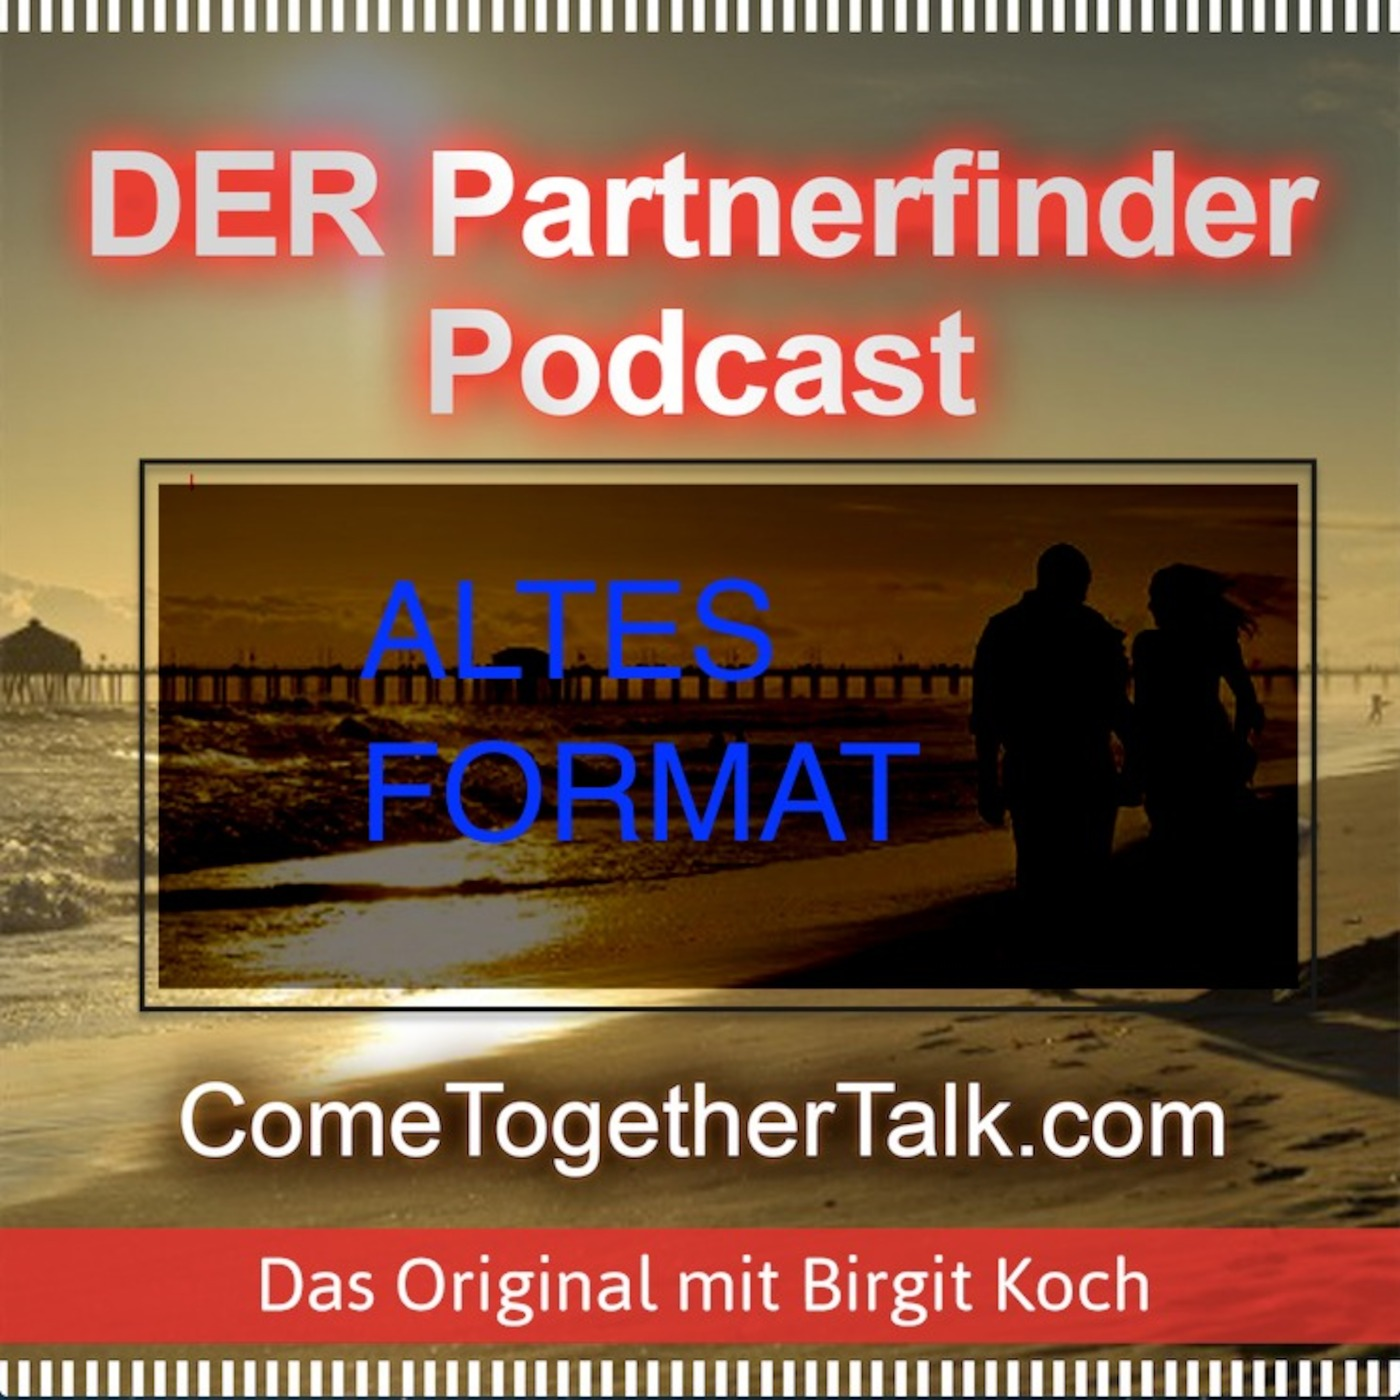 ComeTogetherTalk- DER Partnerfinder Podcast